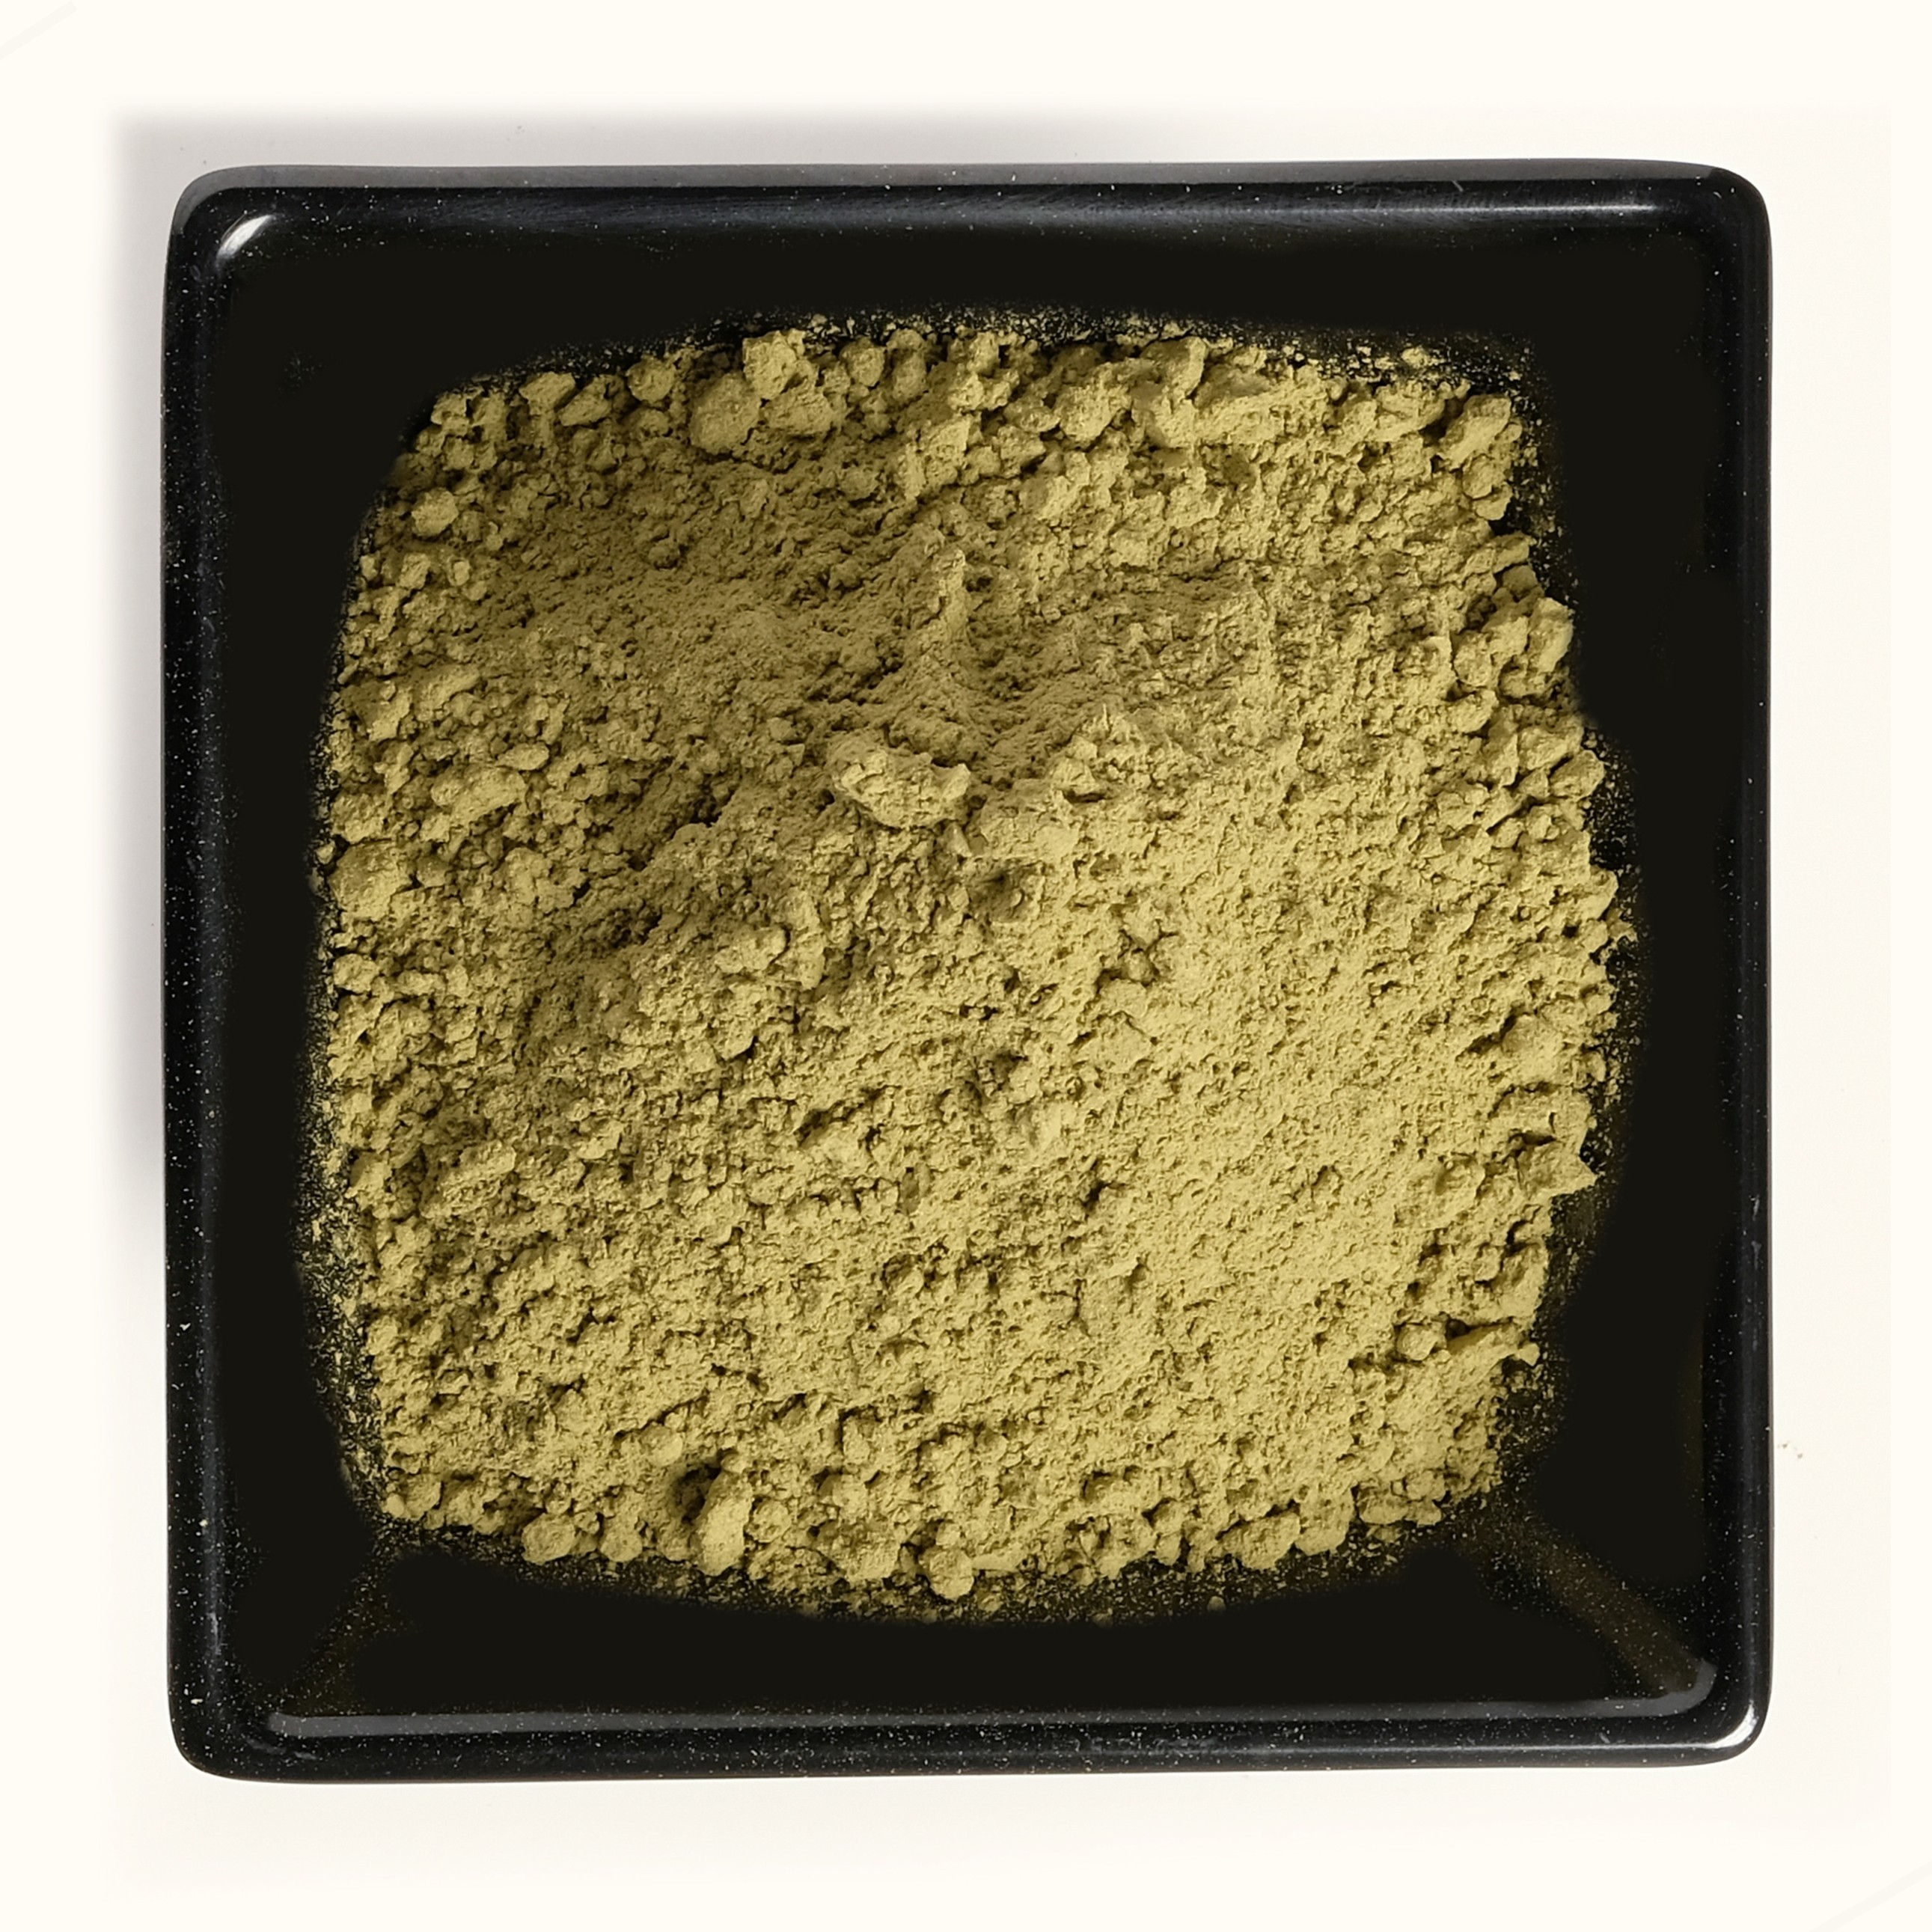 Borneo Kratom Powder (Red Vein)